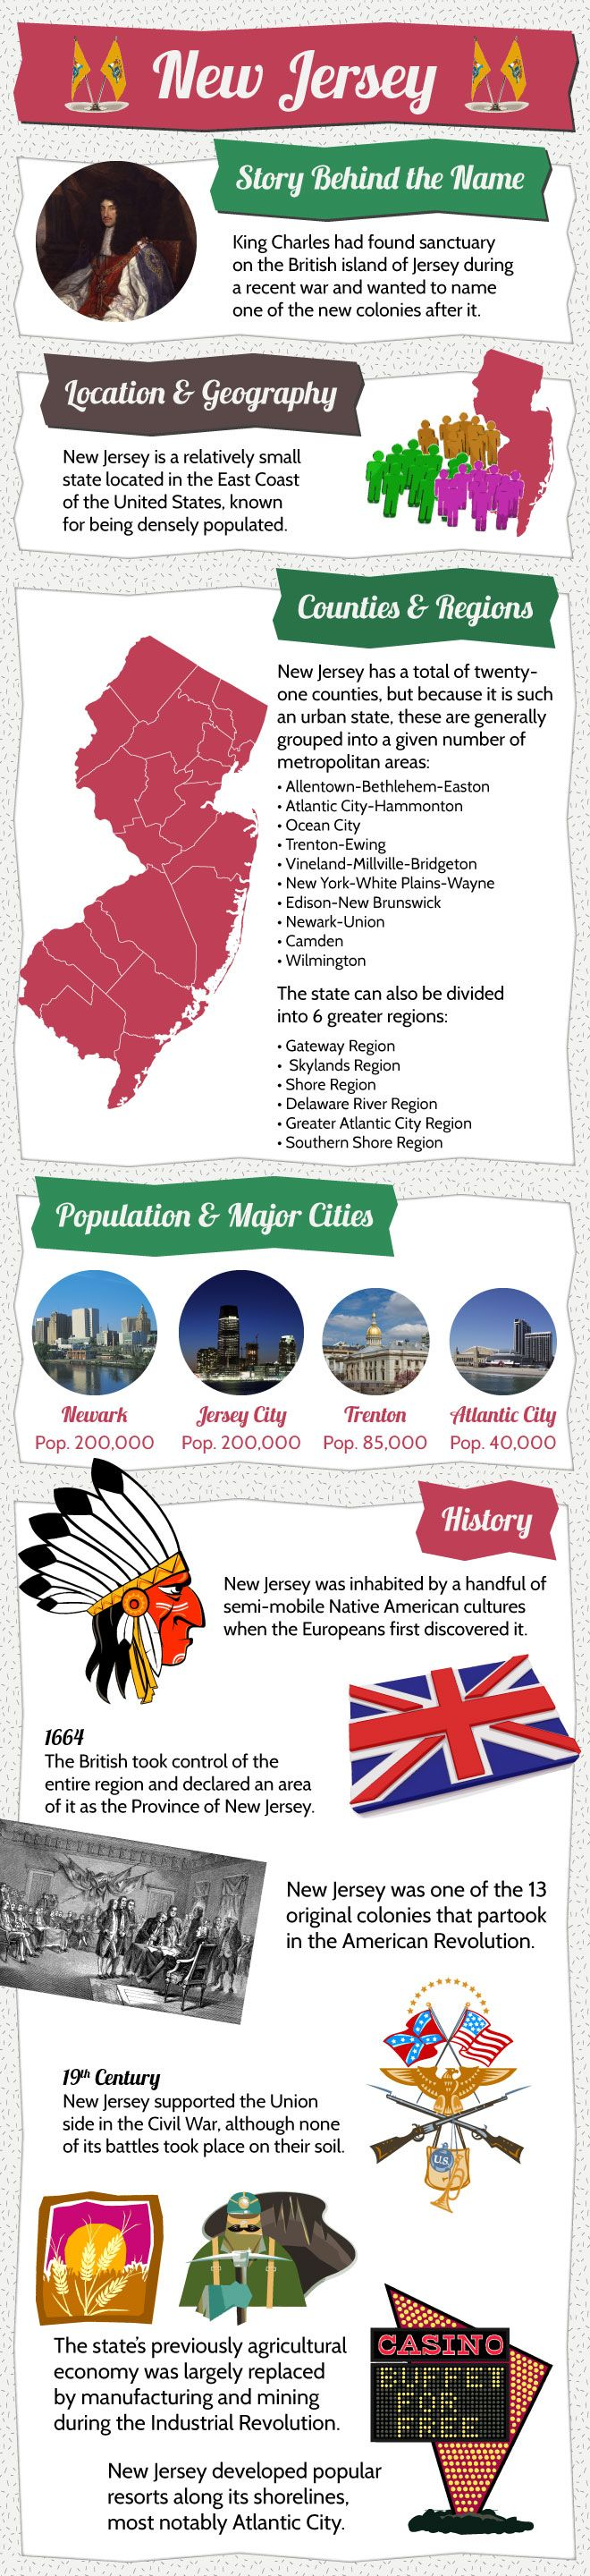 New Jersey Infographic – Facts & Info